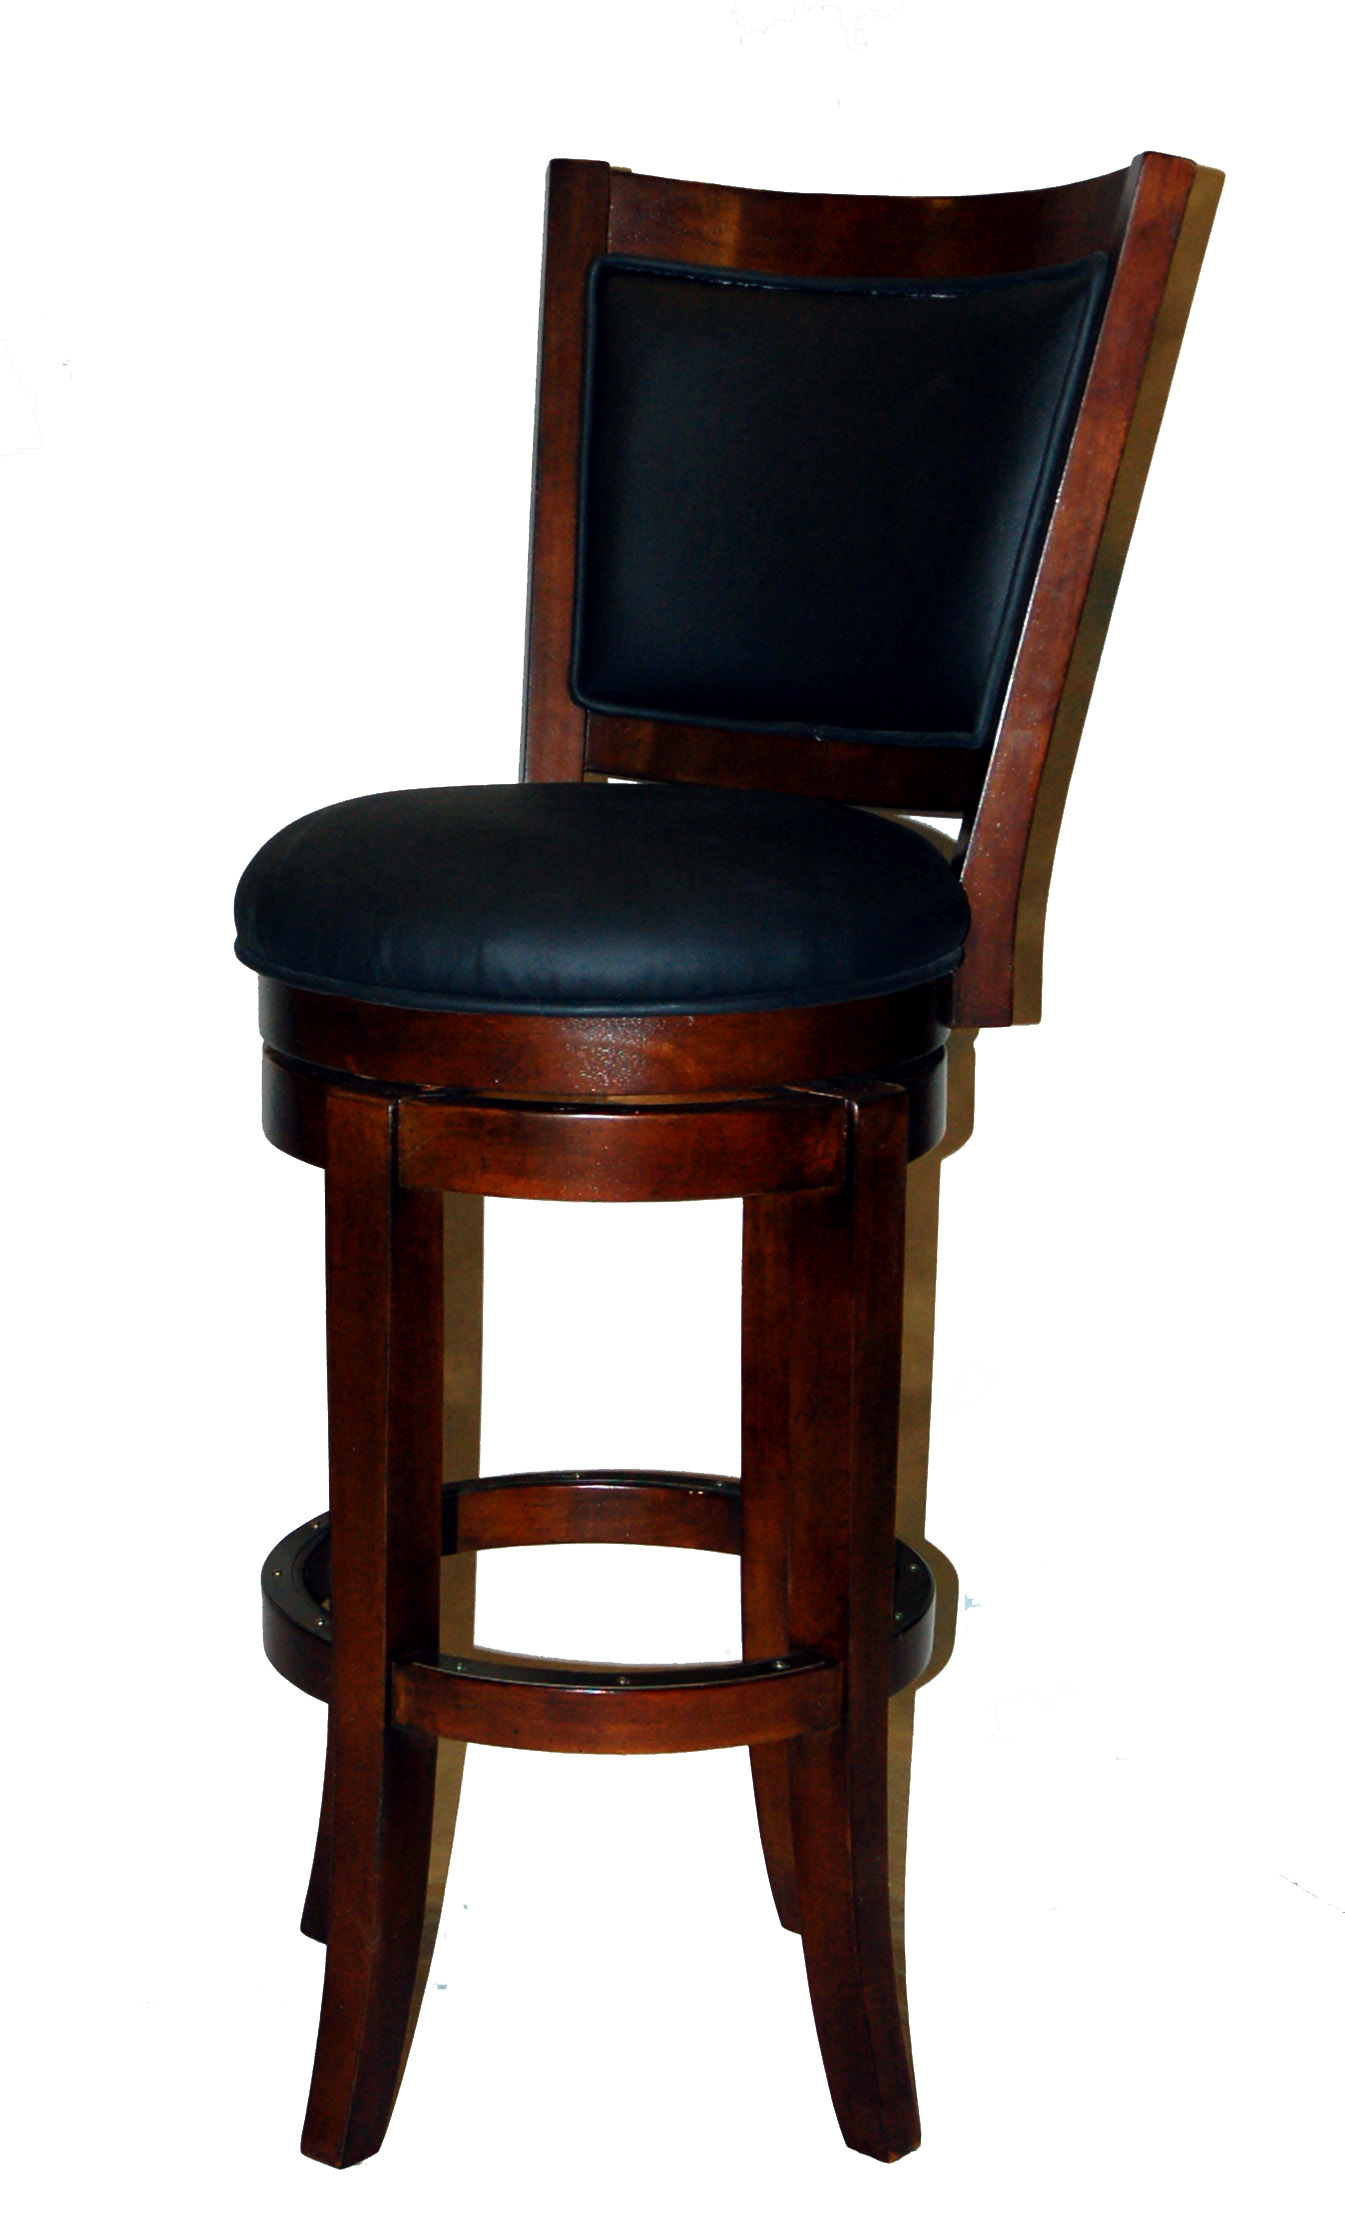 Walnut swivel bar stool made of solid birch hardwood the guinness bar